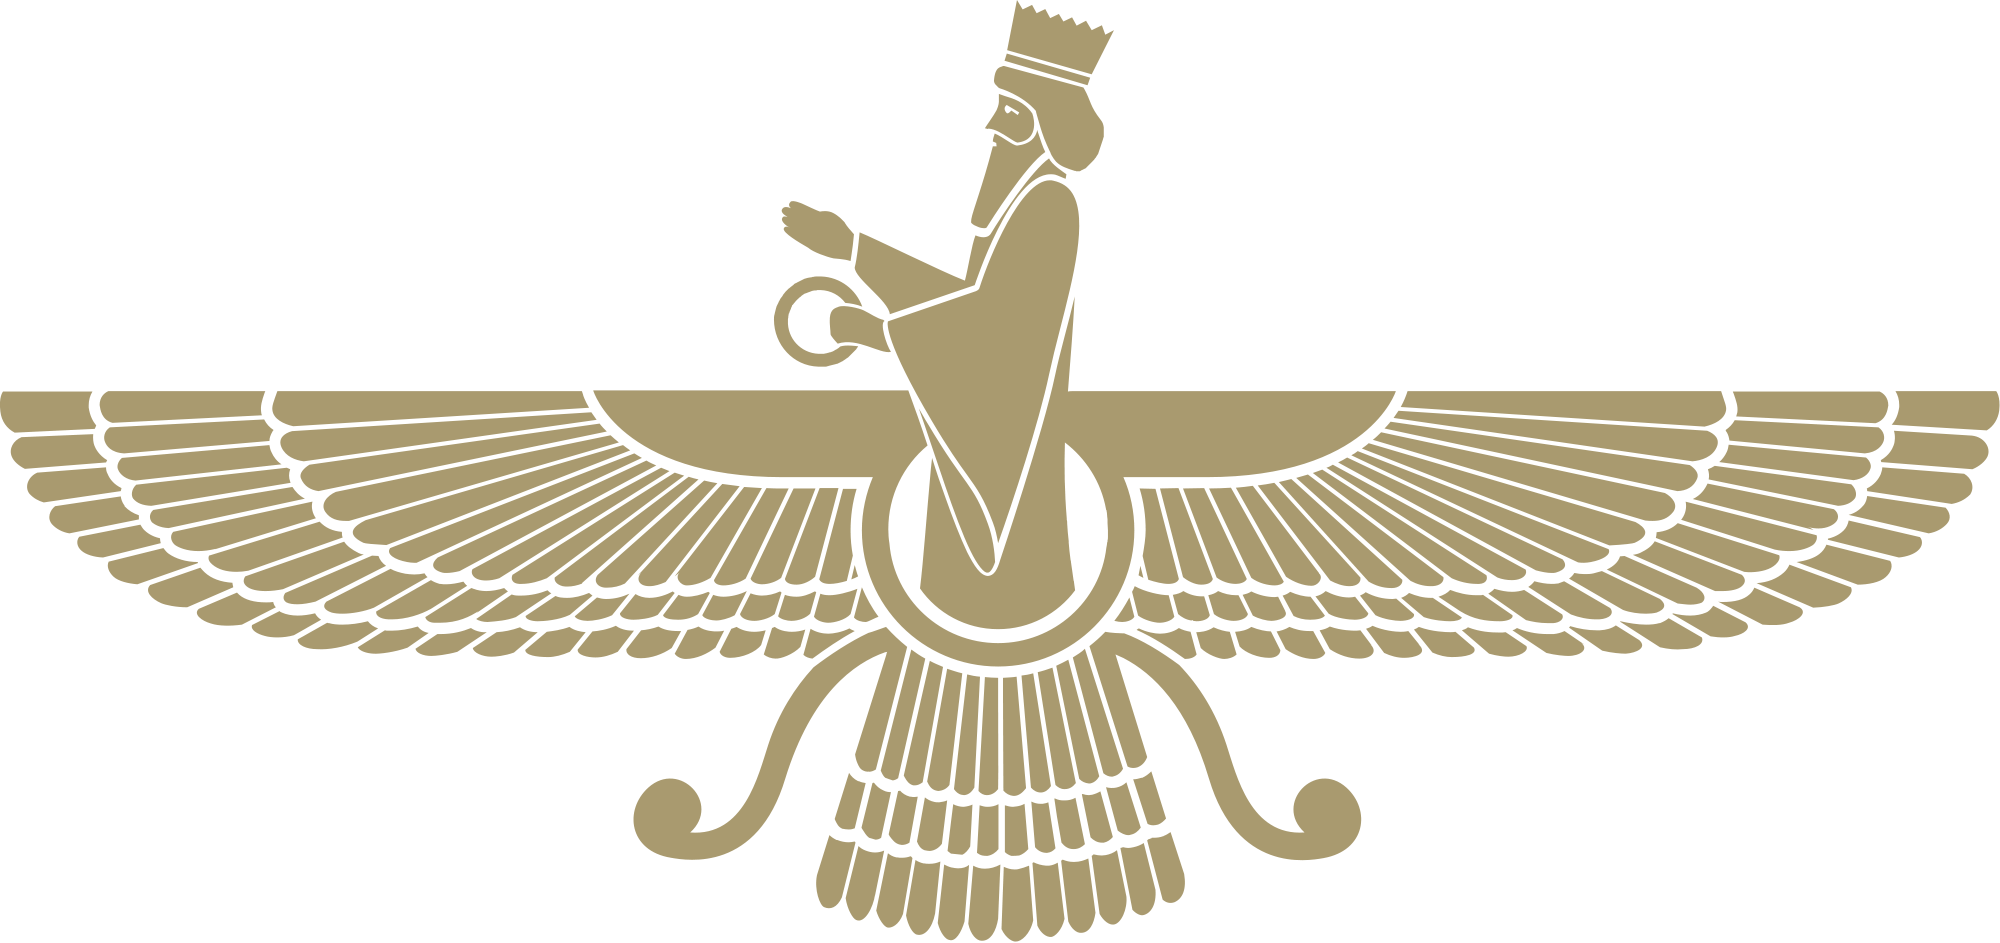 zoroastrianism the rise and fall and the migration of the early zoroastrianism is one of the world s oldest monotheistic religions it was founded by the prophet